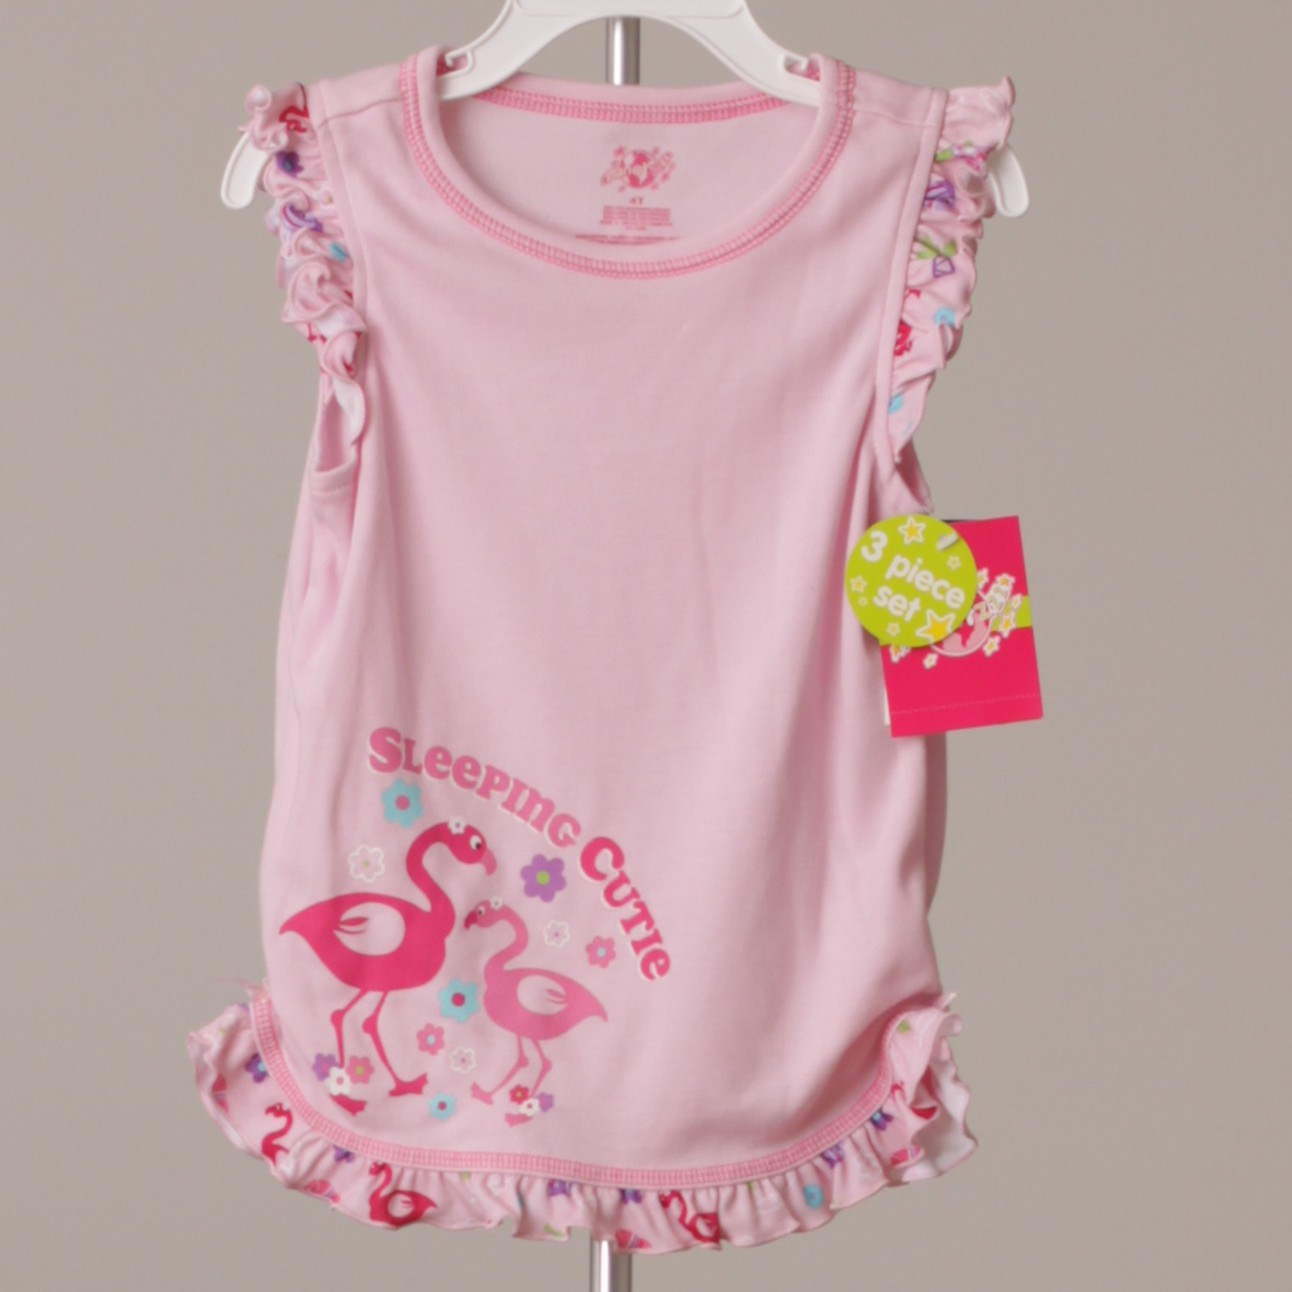 GOOD QUALITY INFANTS 2 PC OUTFIT PRETTY PINK AND GRAY 2T /& 3T BY FISCHER PRICE